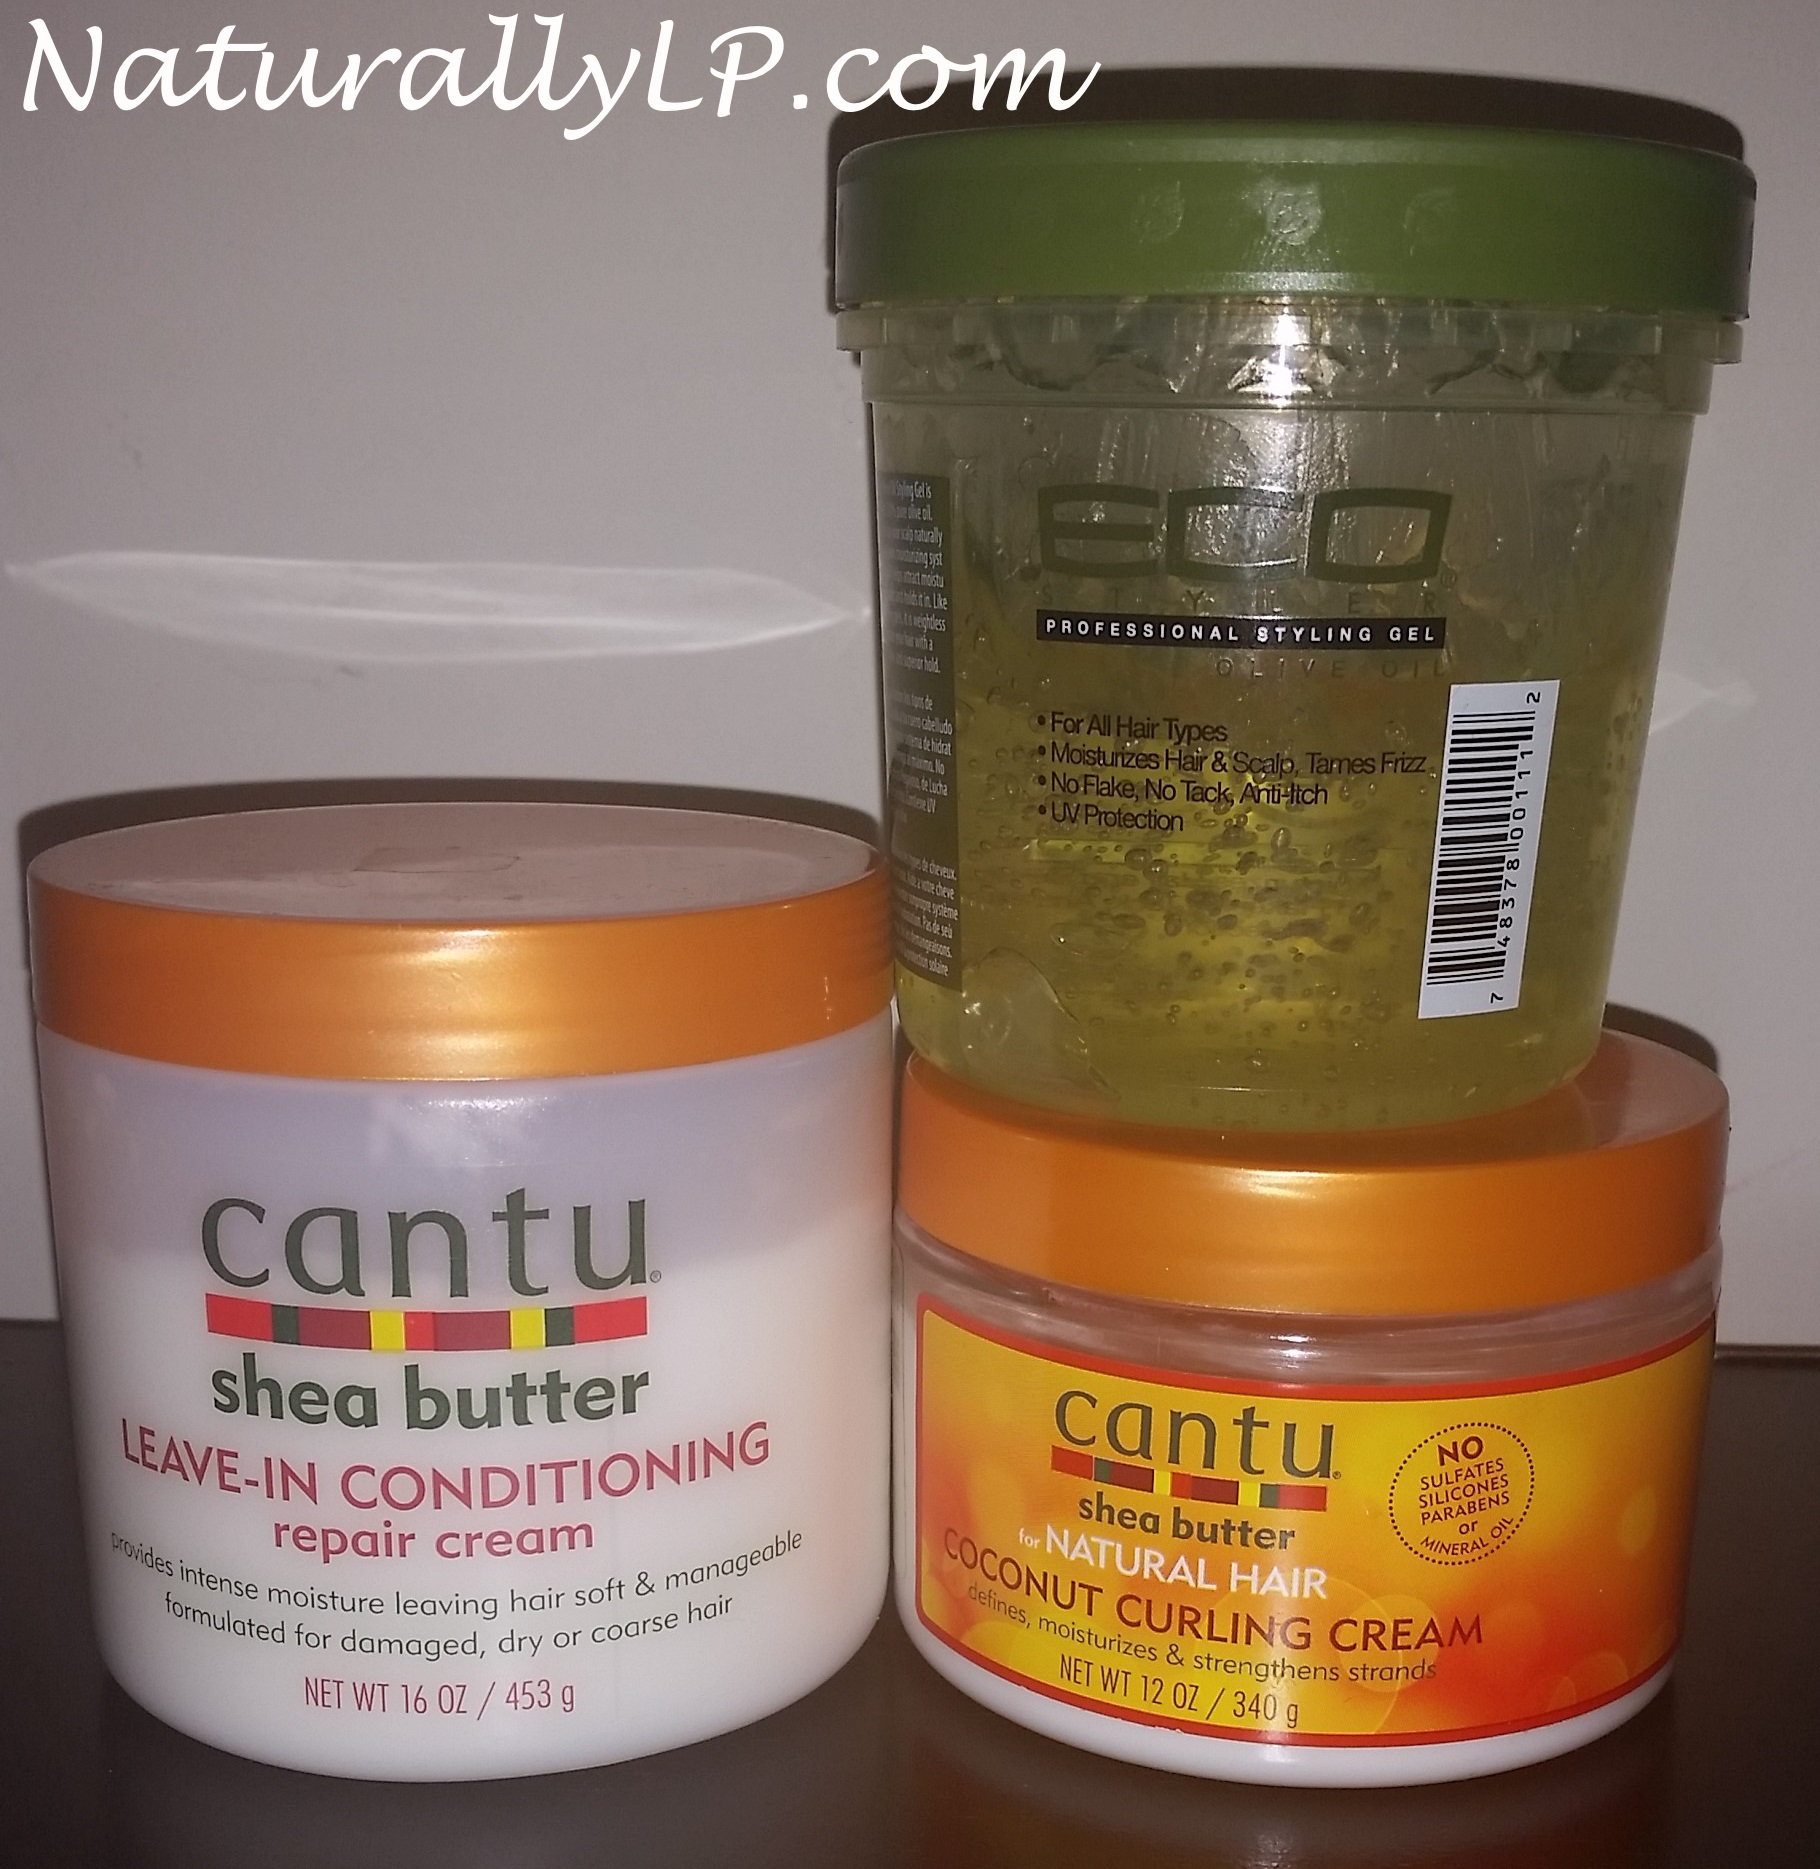 Cantu Shea Butter Leave In Cantu Shea Butter Coconut Curling Cream Eco Styler Olive Oil Gel Naturally LP Share